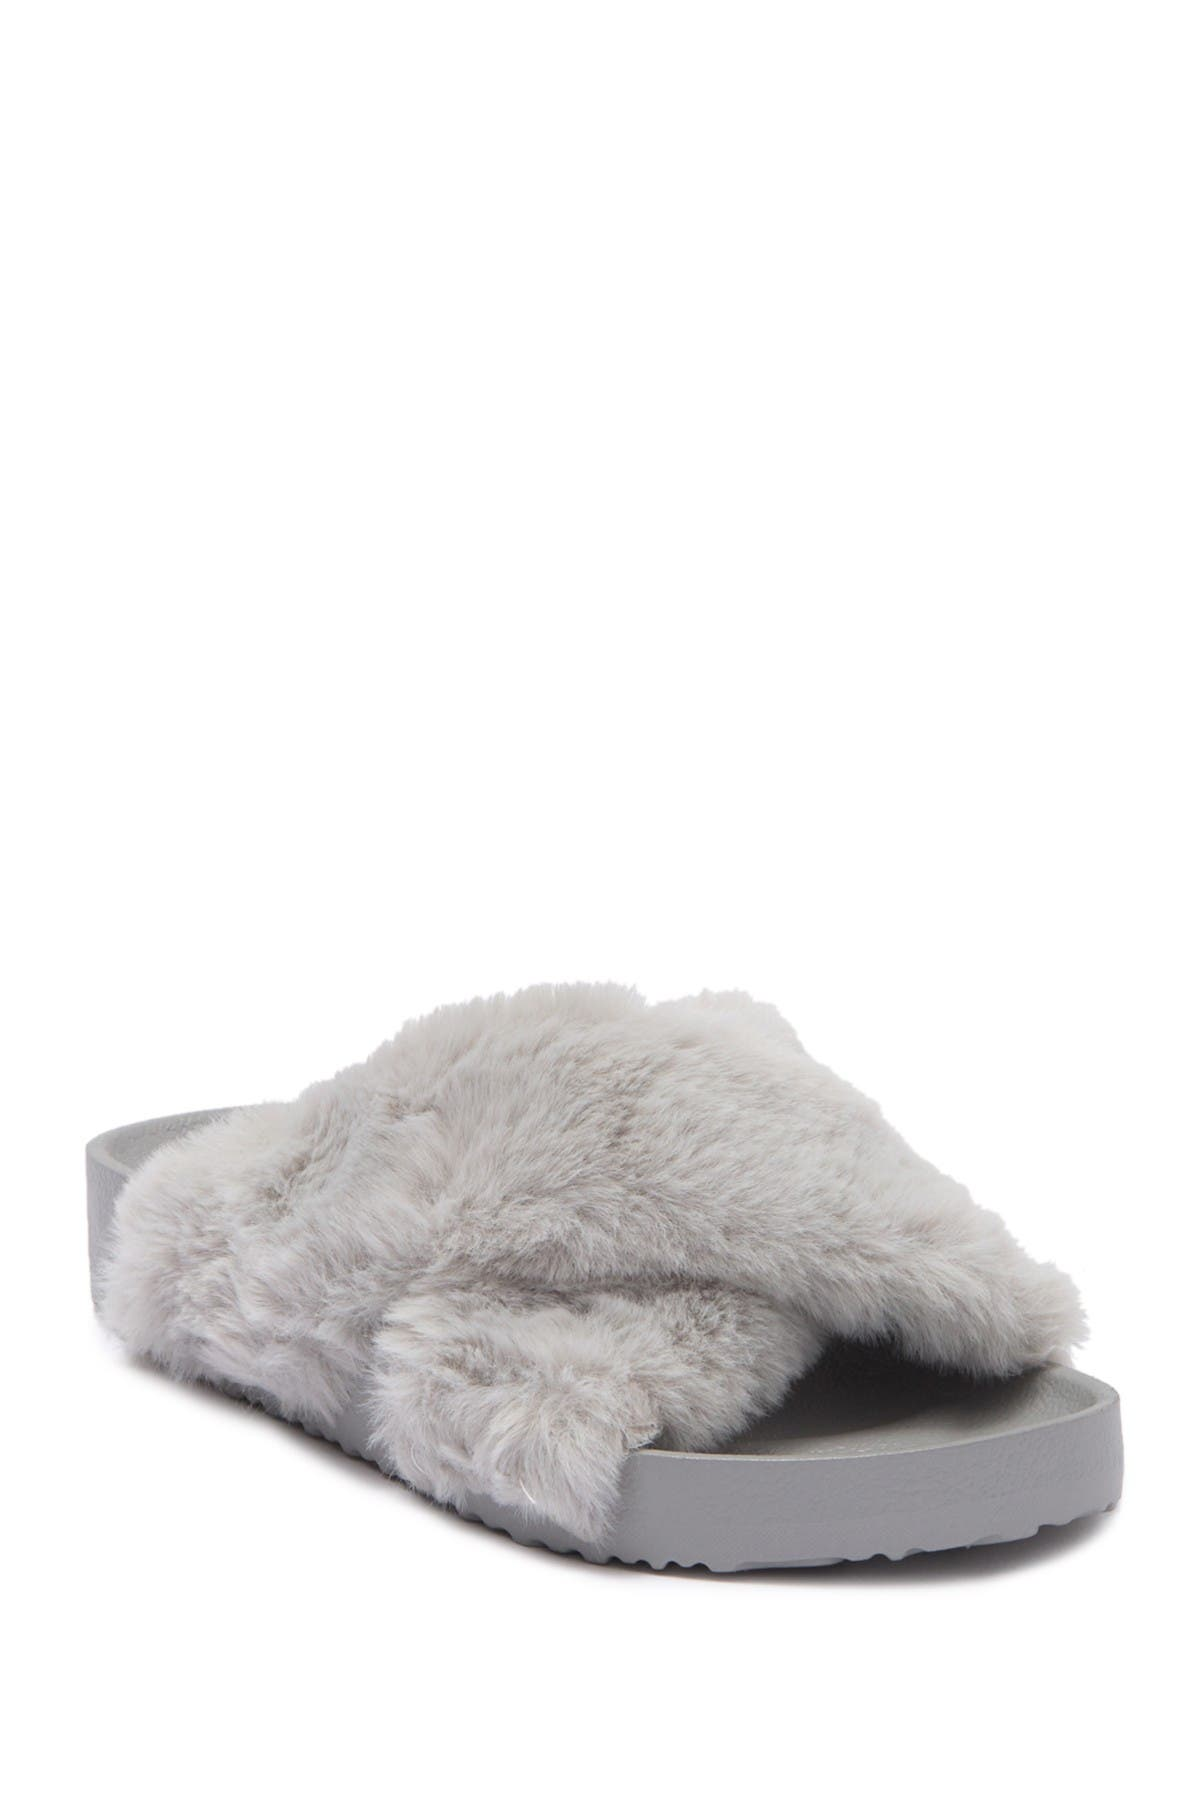 Unionbay Faux Fur Slide Sandal In Grey